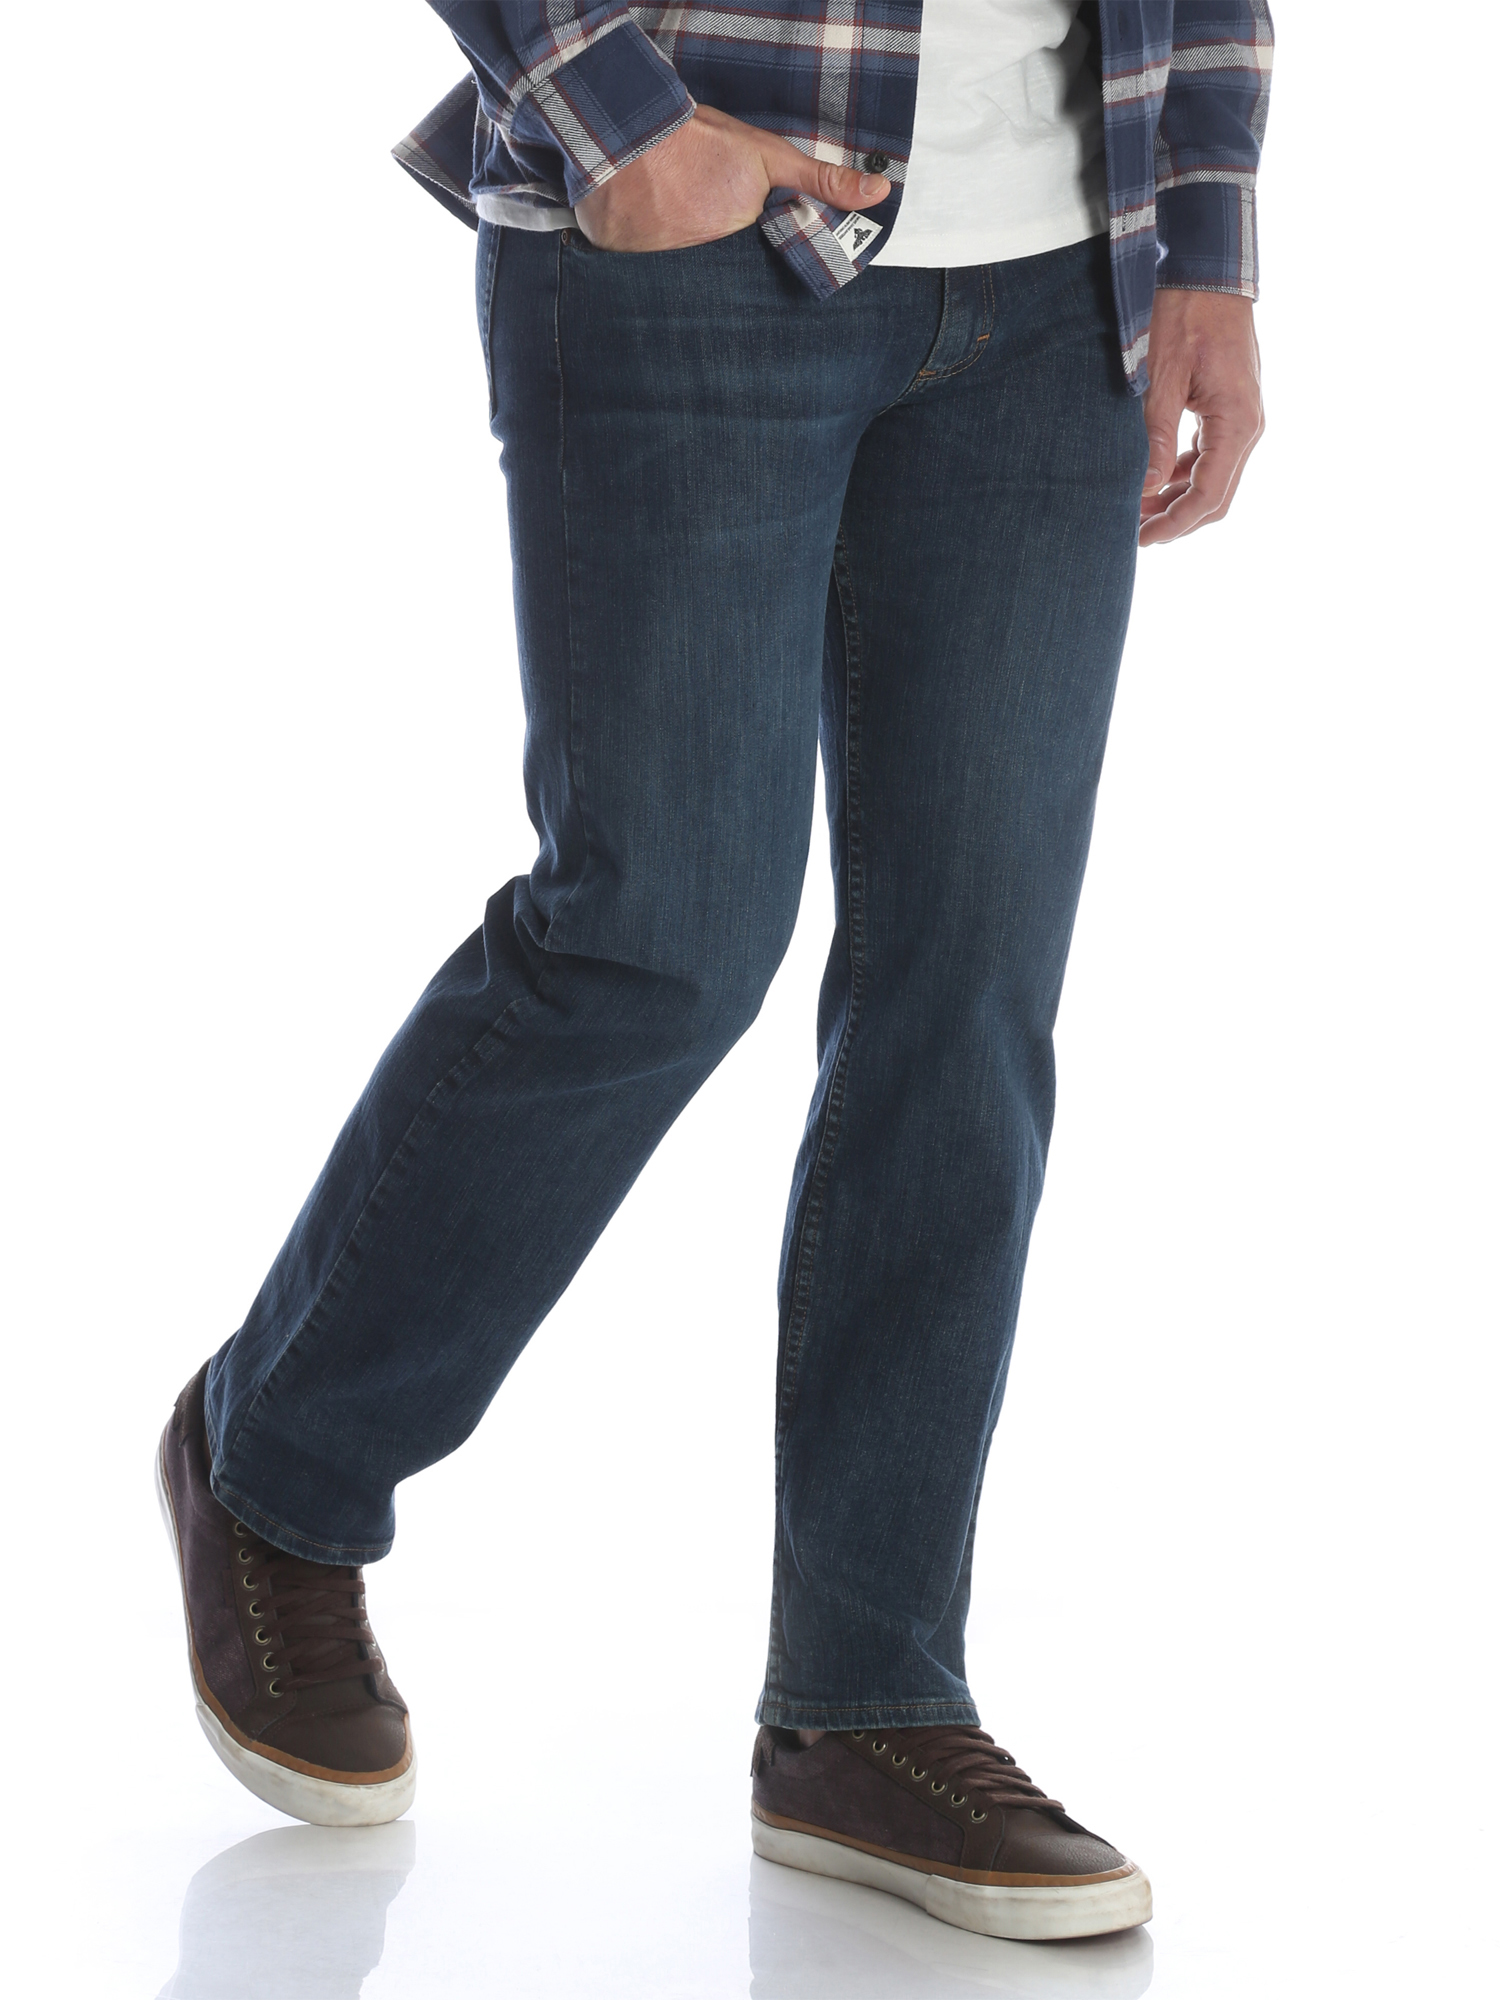 Wrangler Men's Performance Series Relaxed Fit Jean